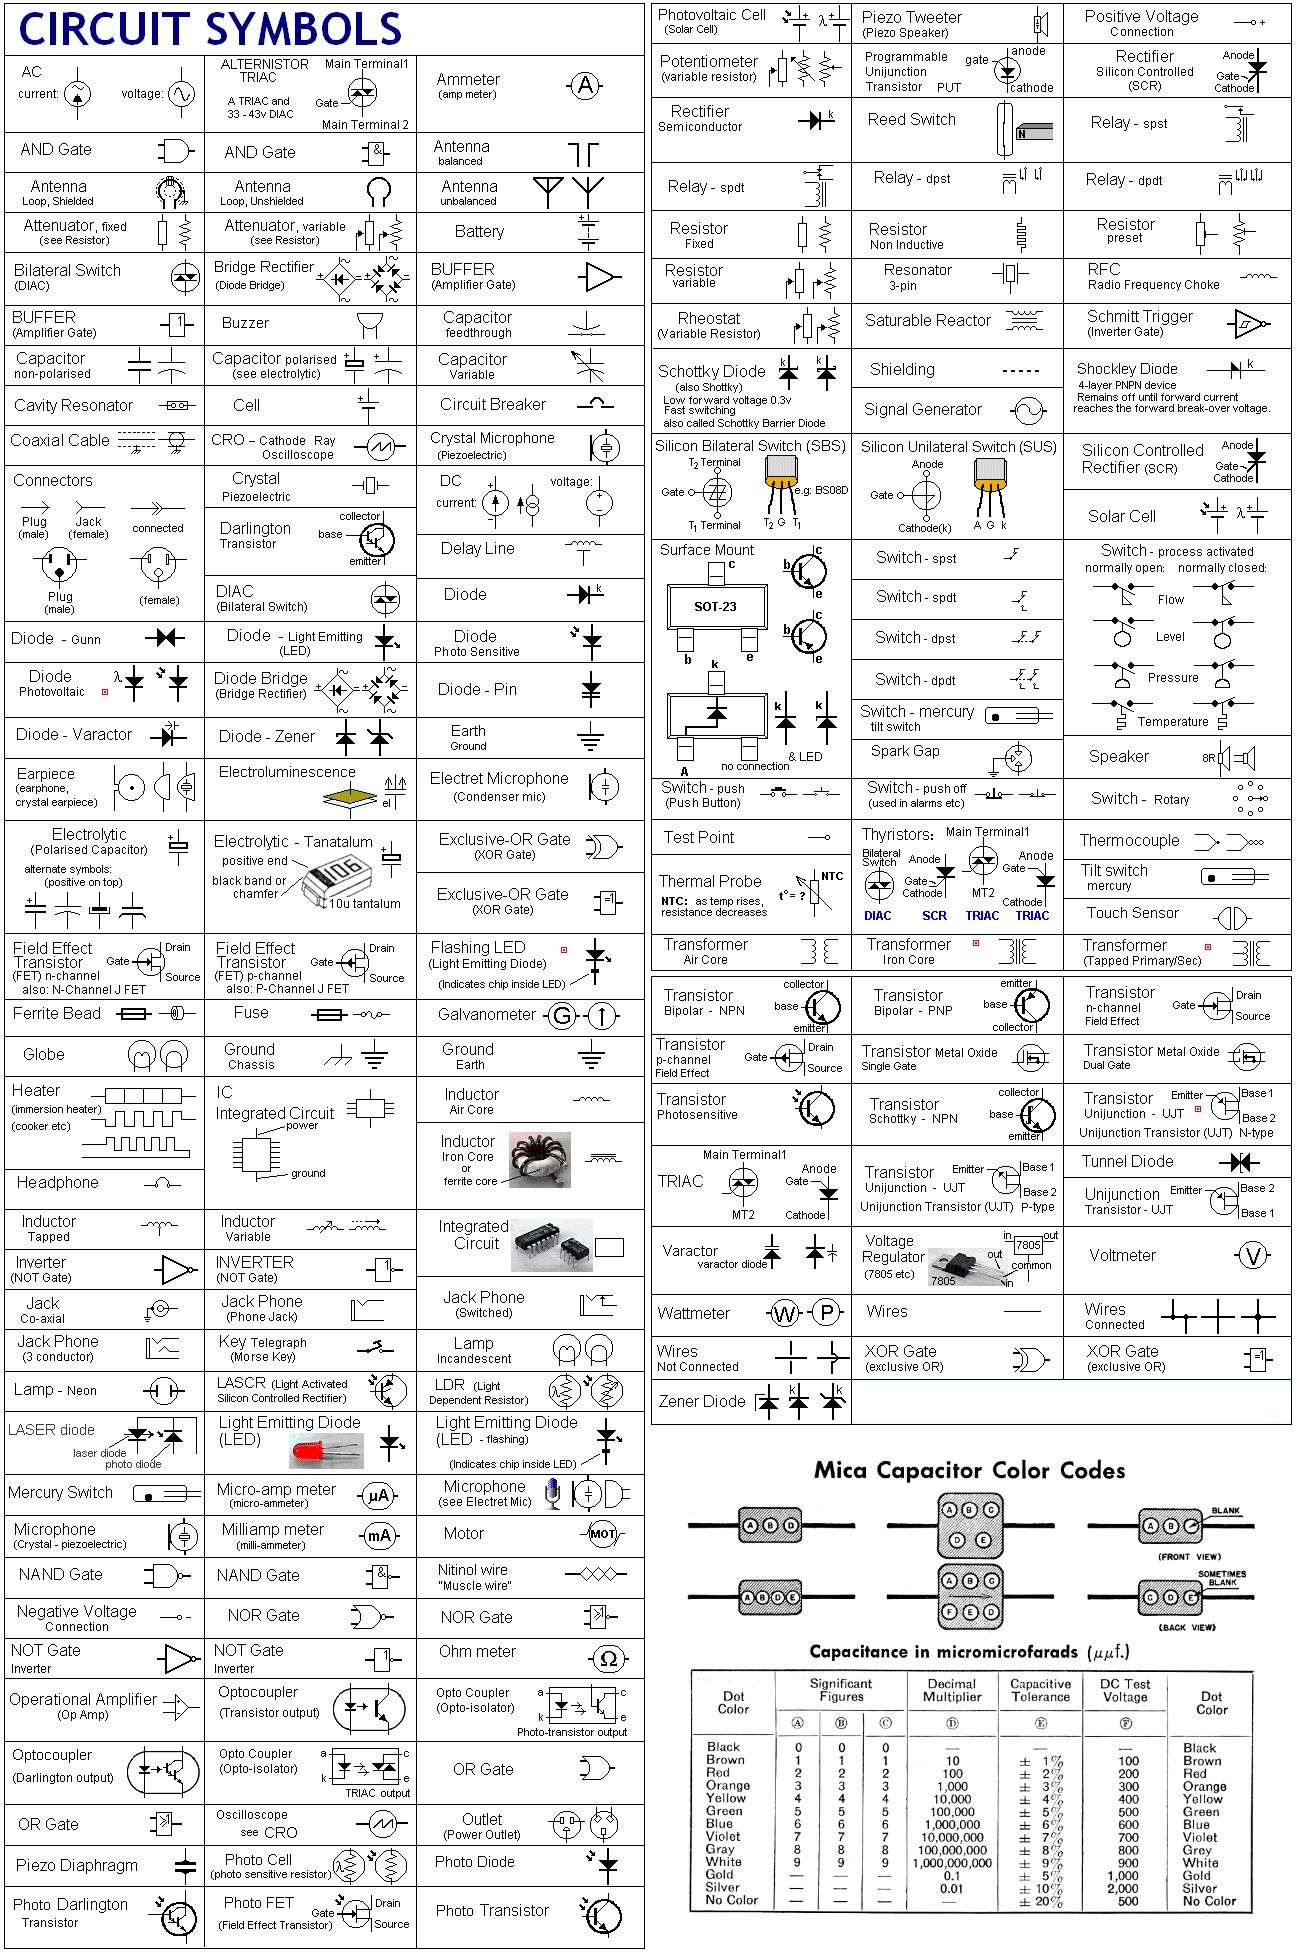 6c64fb84c8e162b28334051891c290f4 schematic symbols chart electric circuit symbols a considerably electrical wiring diagram symbols list at edmiracle.co